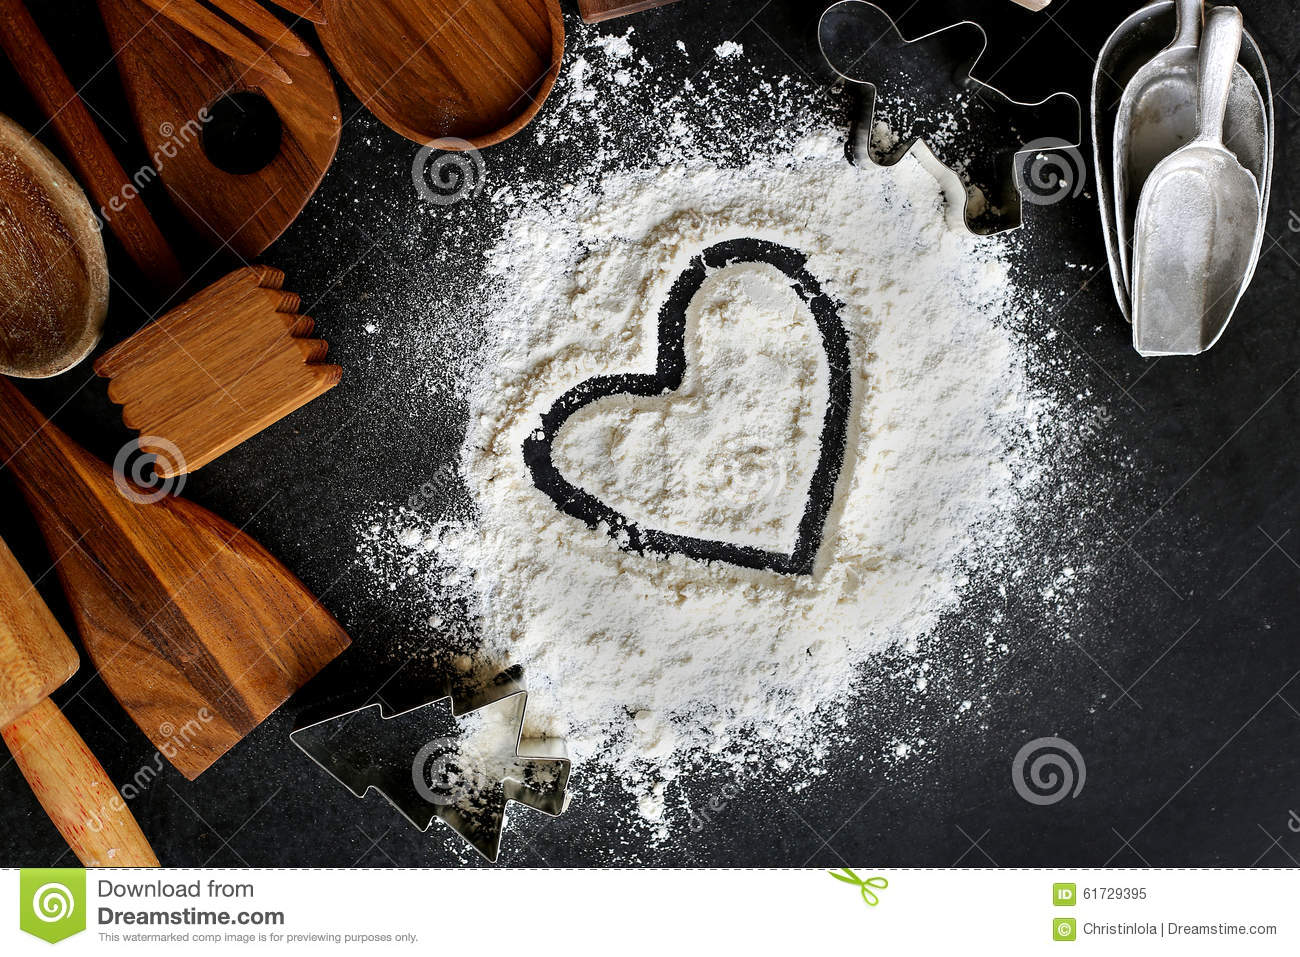 Heart Drawn In Baking Flour With Baking Supplies Border